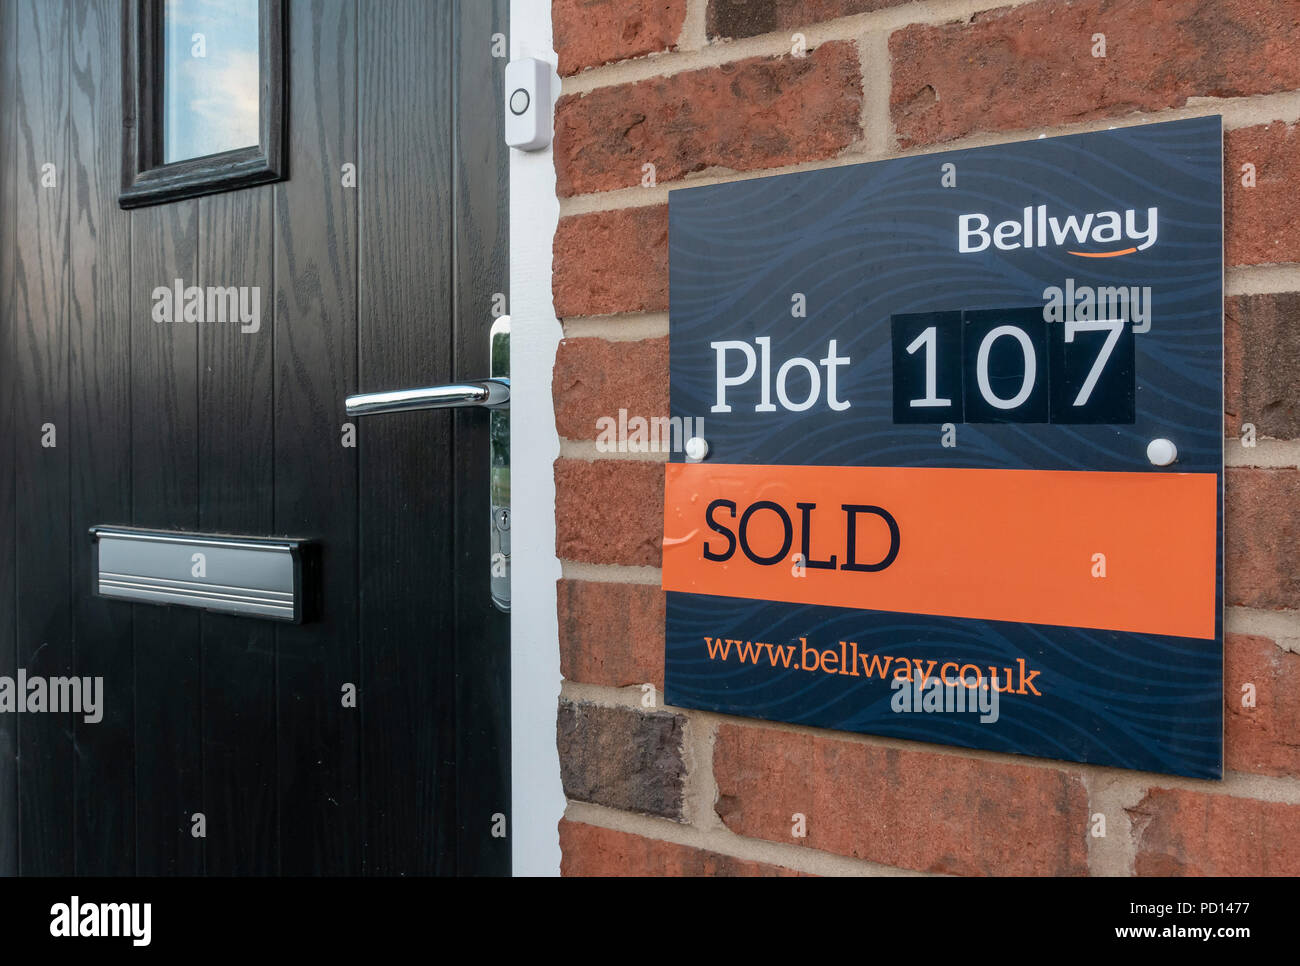 Sold sign on a new Bellway development housing estate plot - Stock Image